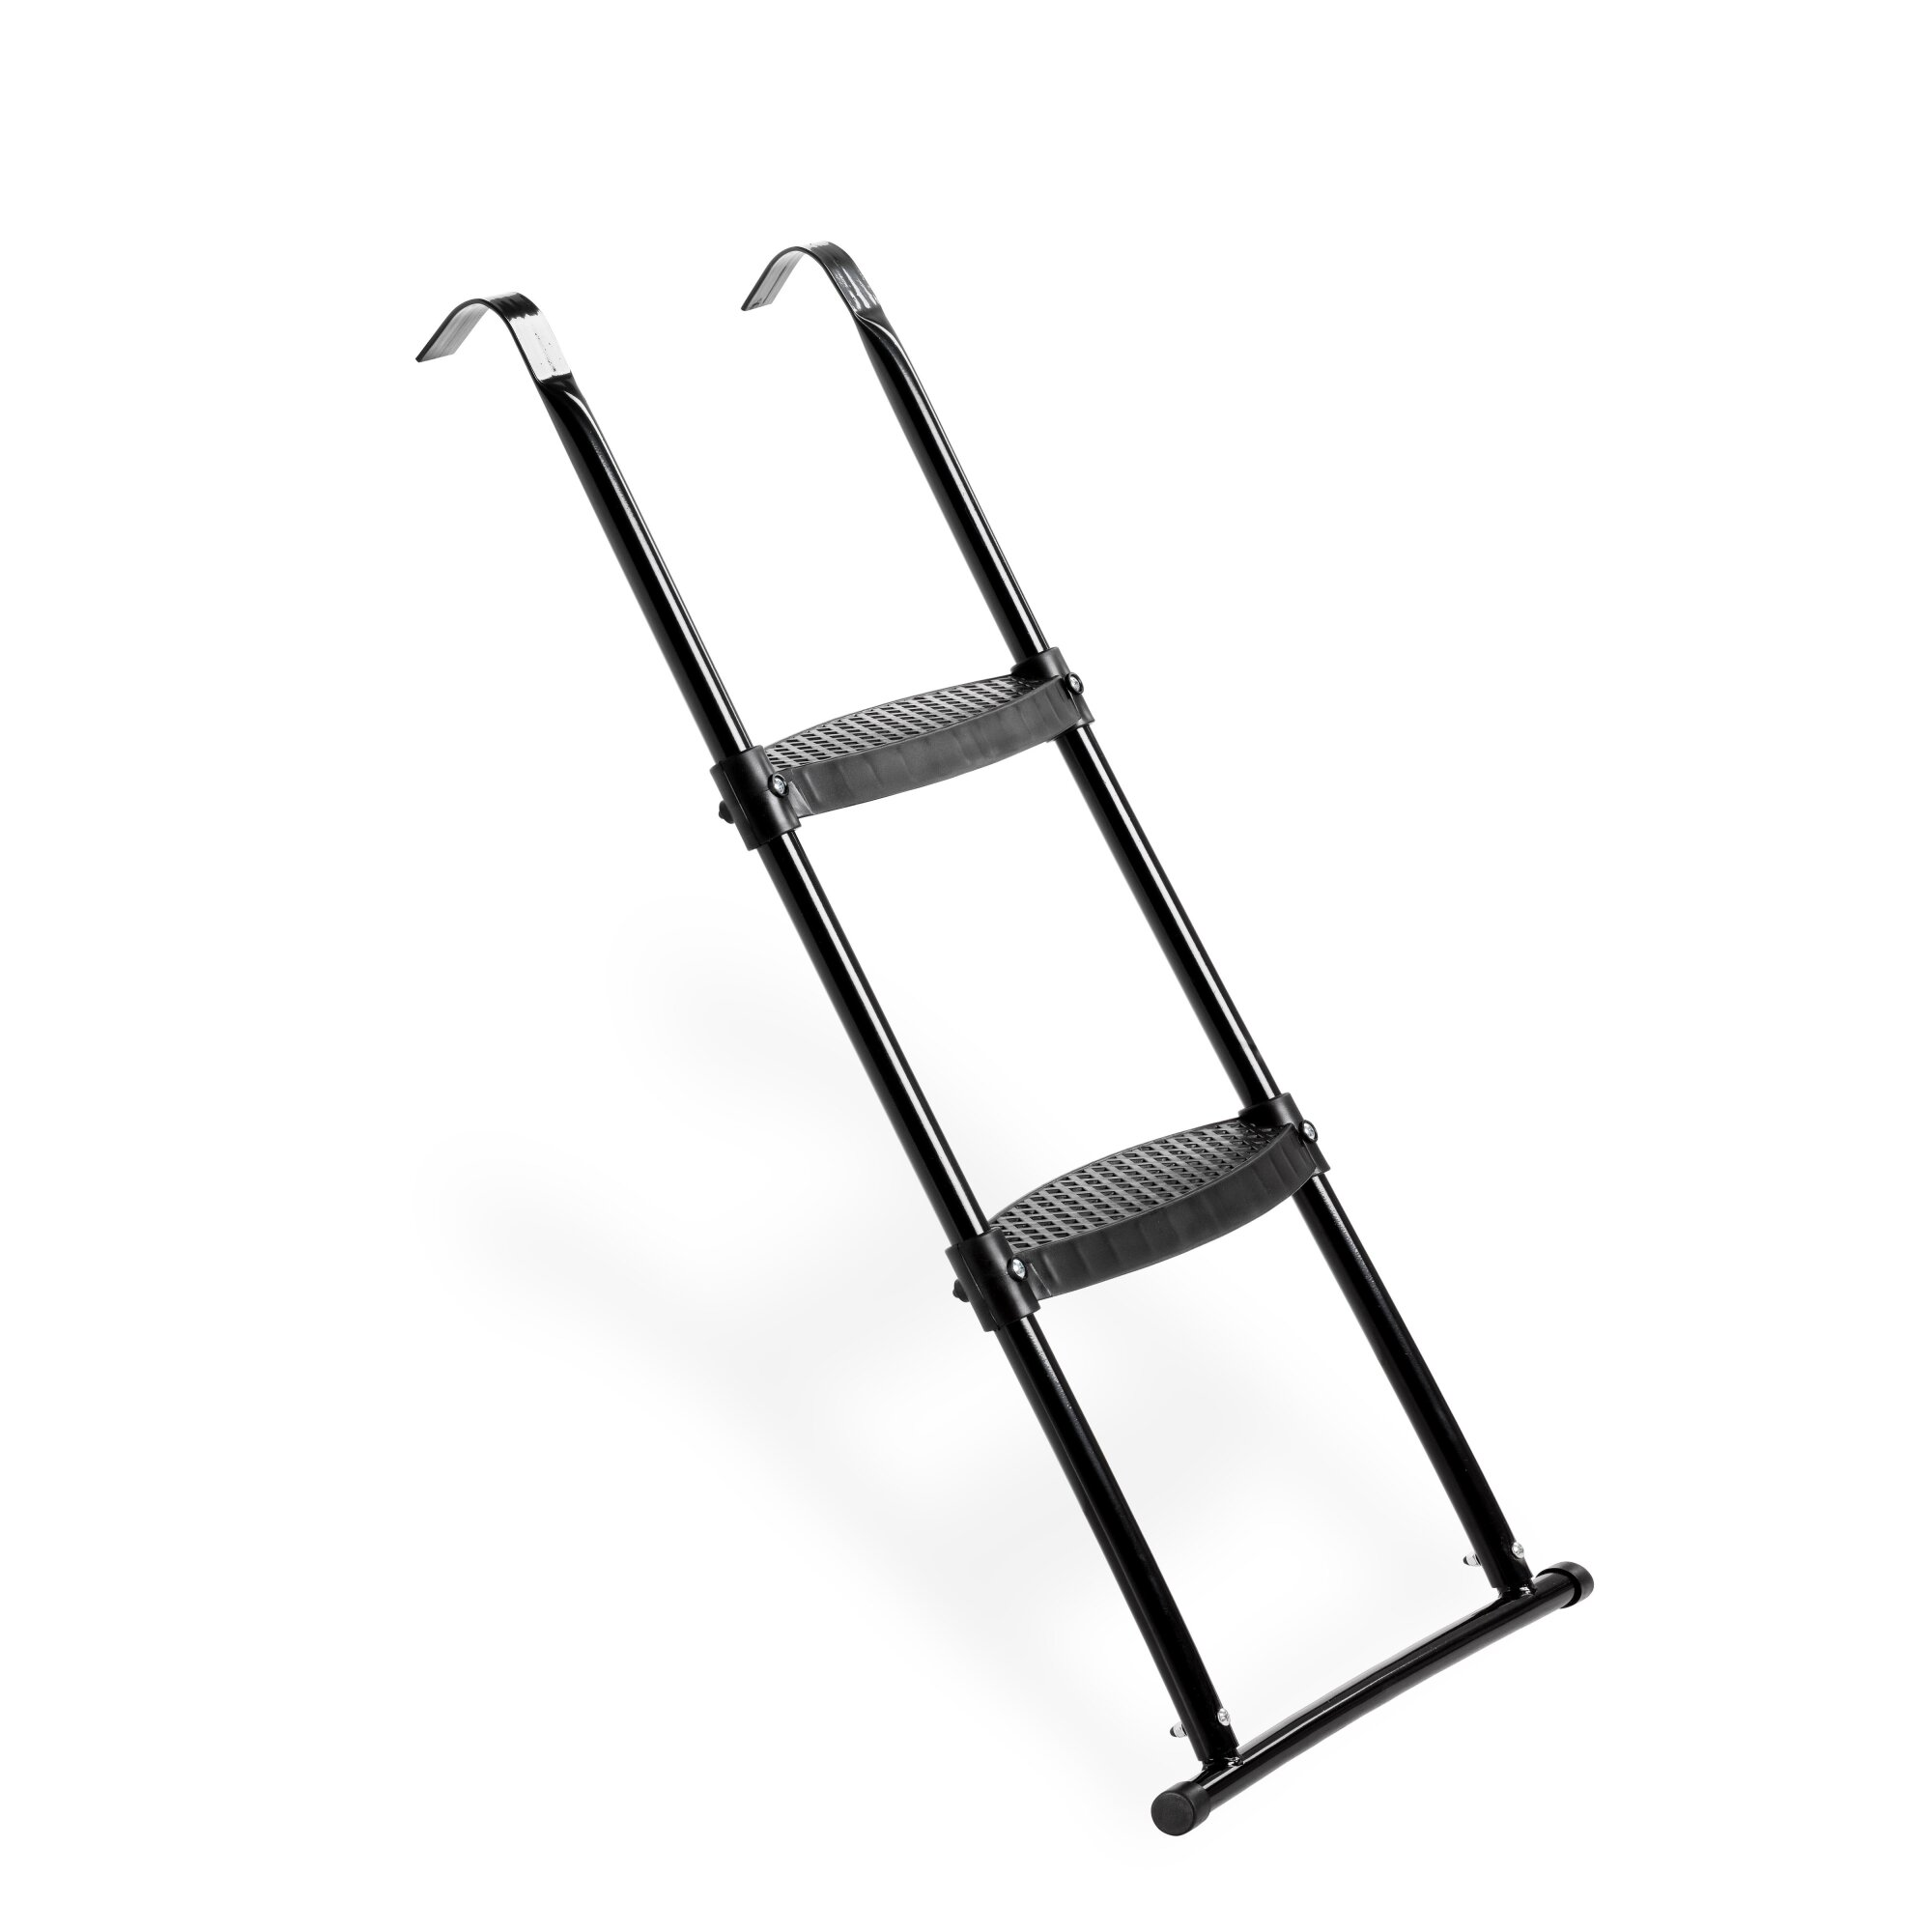 EXIT - Trampoline Ladder for Trampolines with a diameter of 366 and 427 (11.40.40.00)